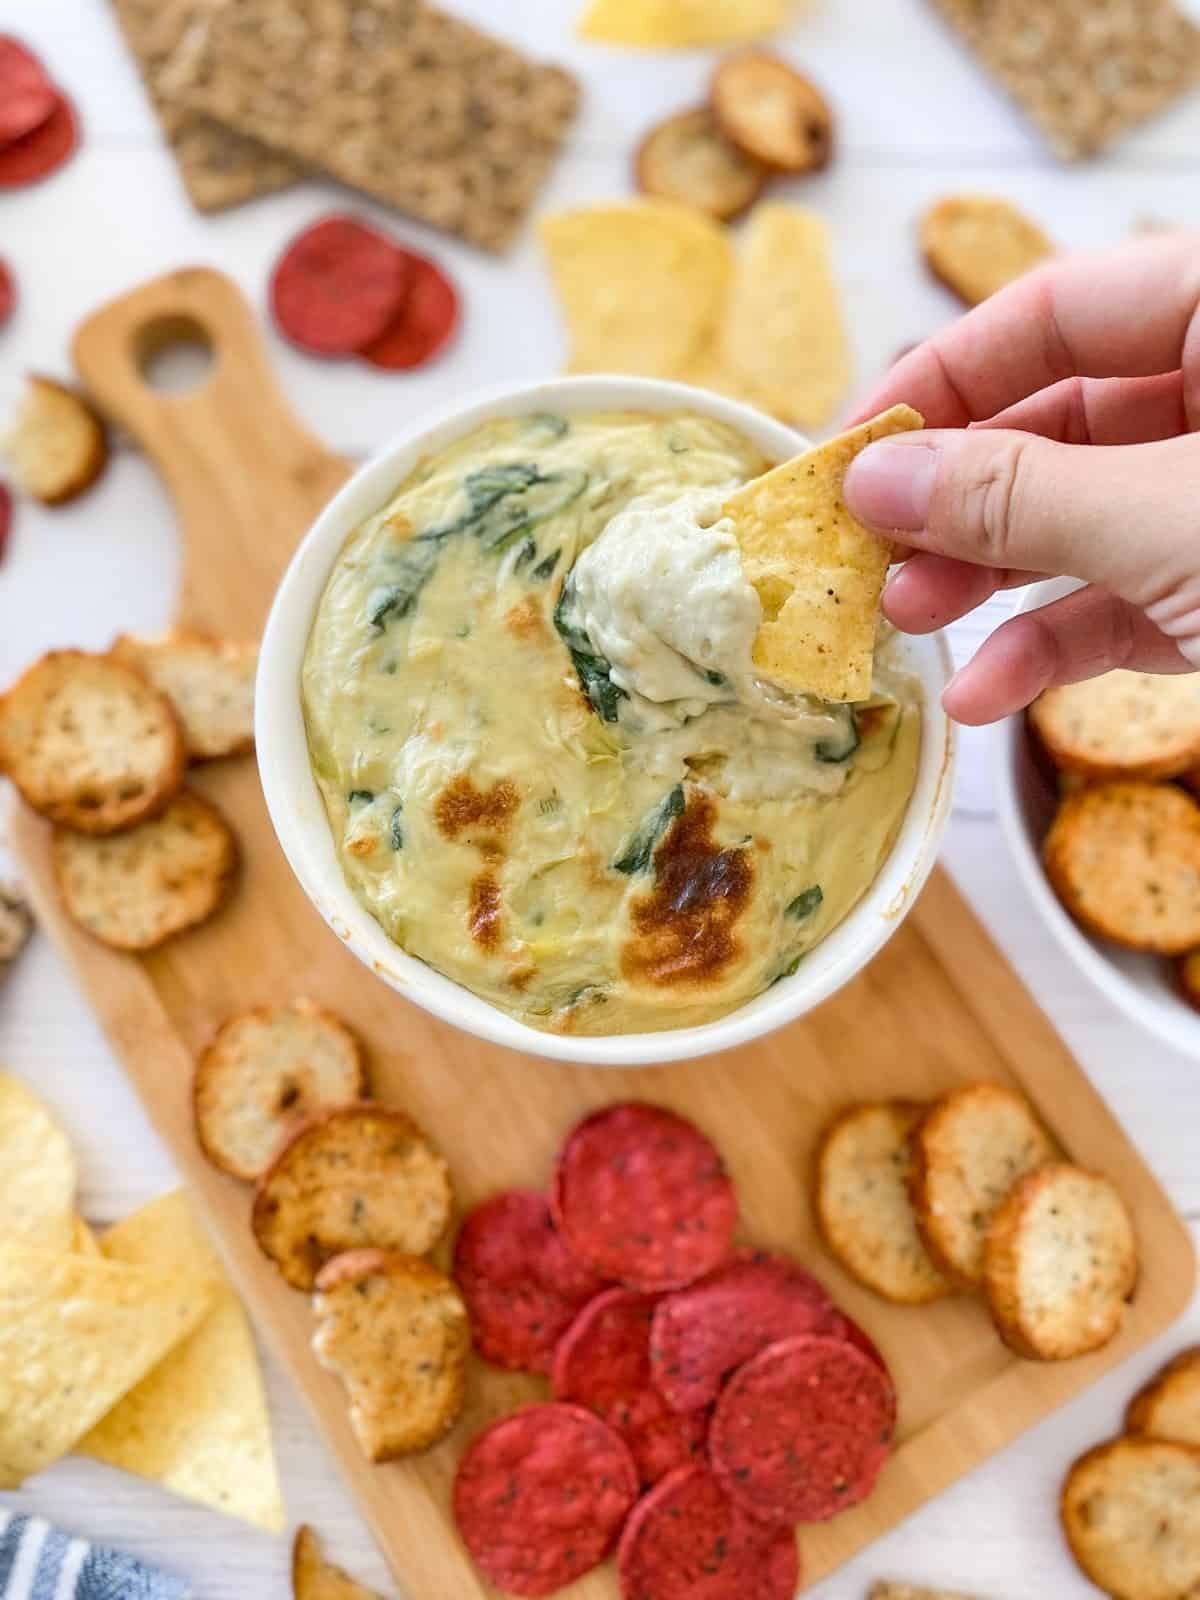 Chip being dunked into bowl of spinach dip.